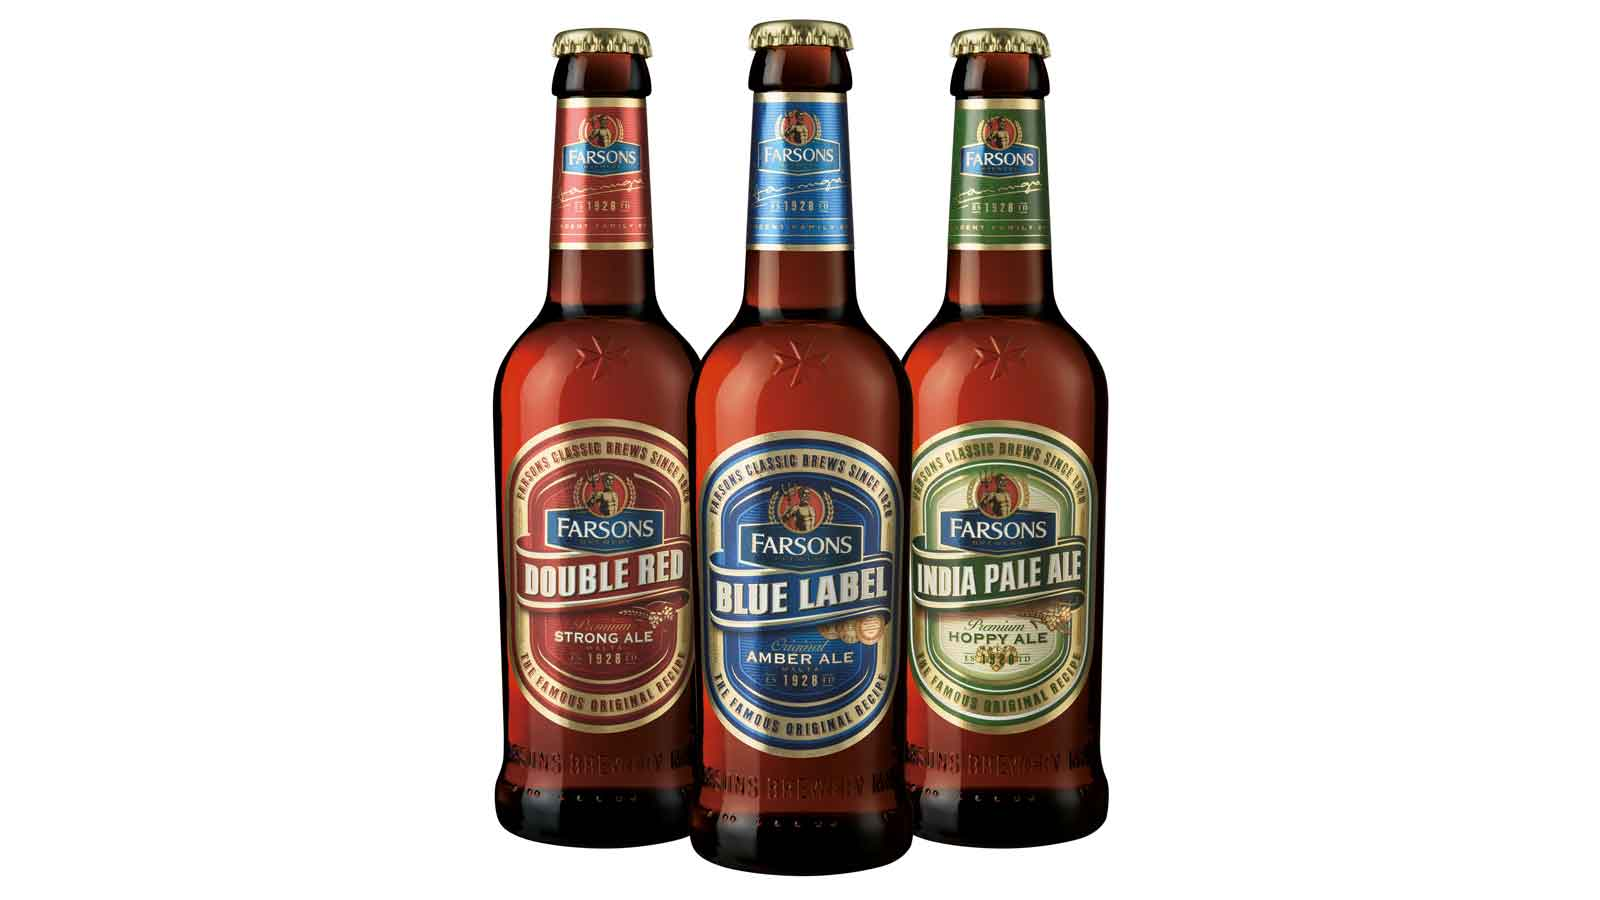 Farsons Brewery launches new and revamped Classic Brews range